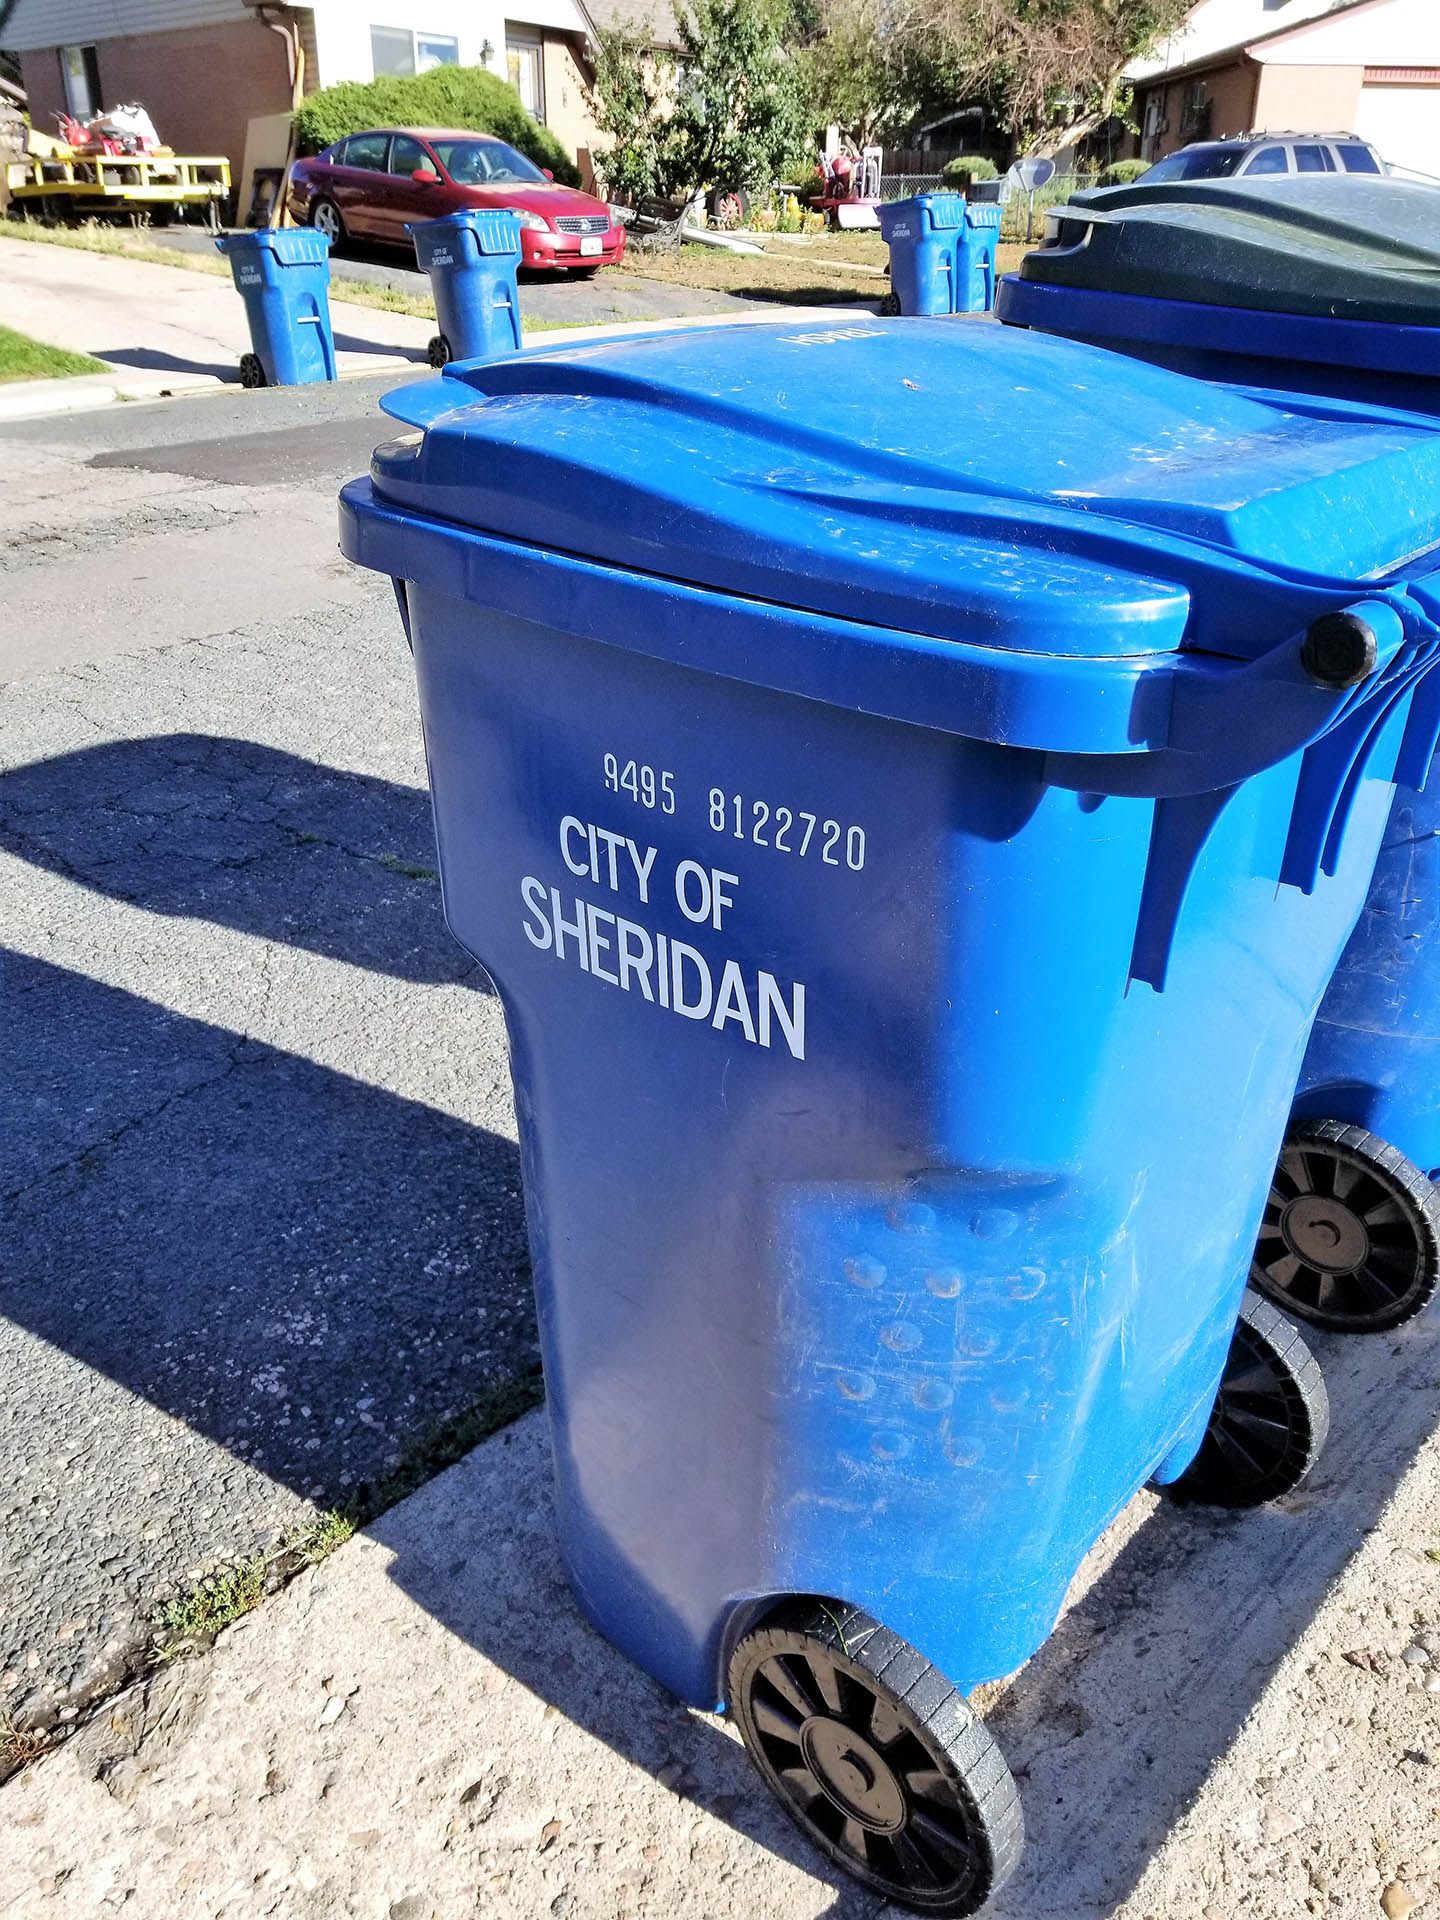 City trash service - neat carts and standardized low prices